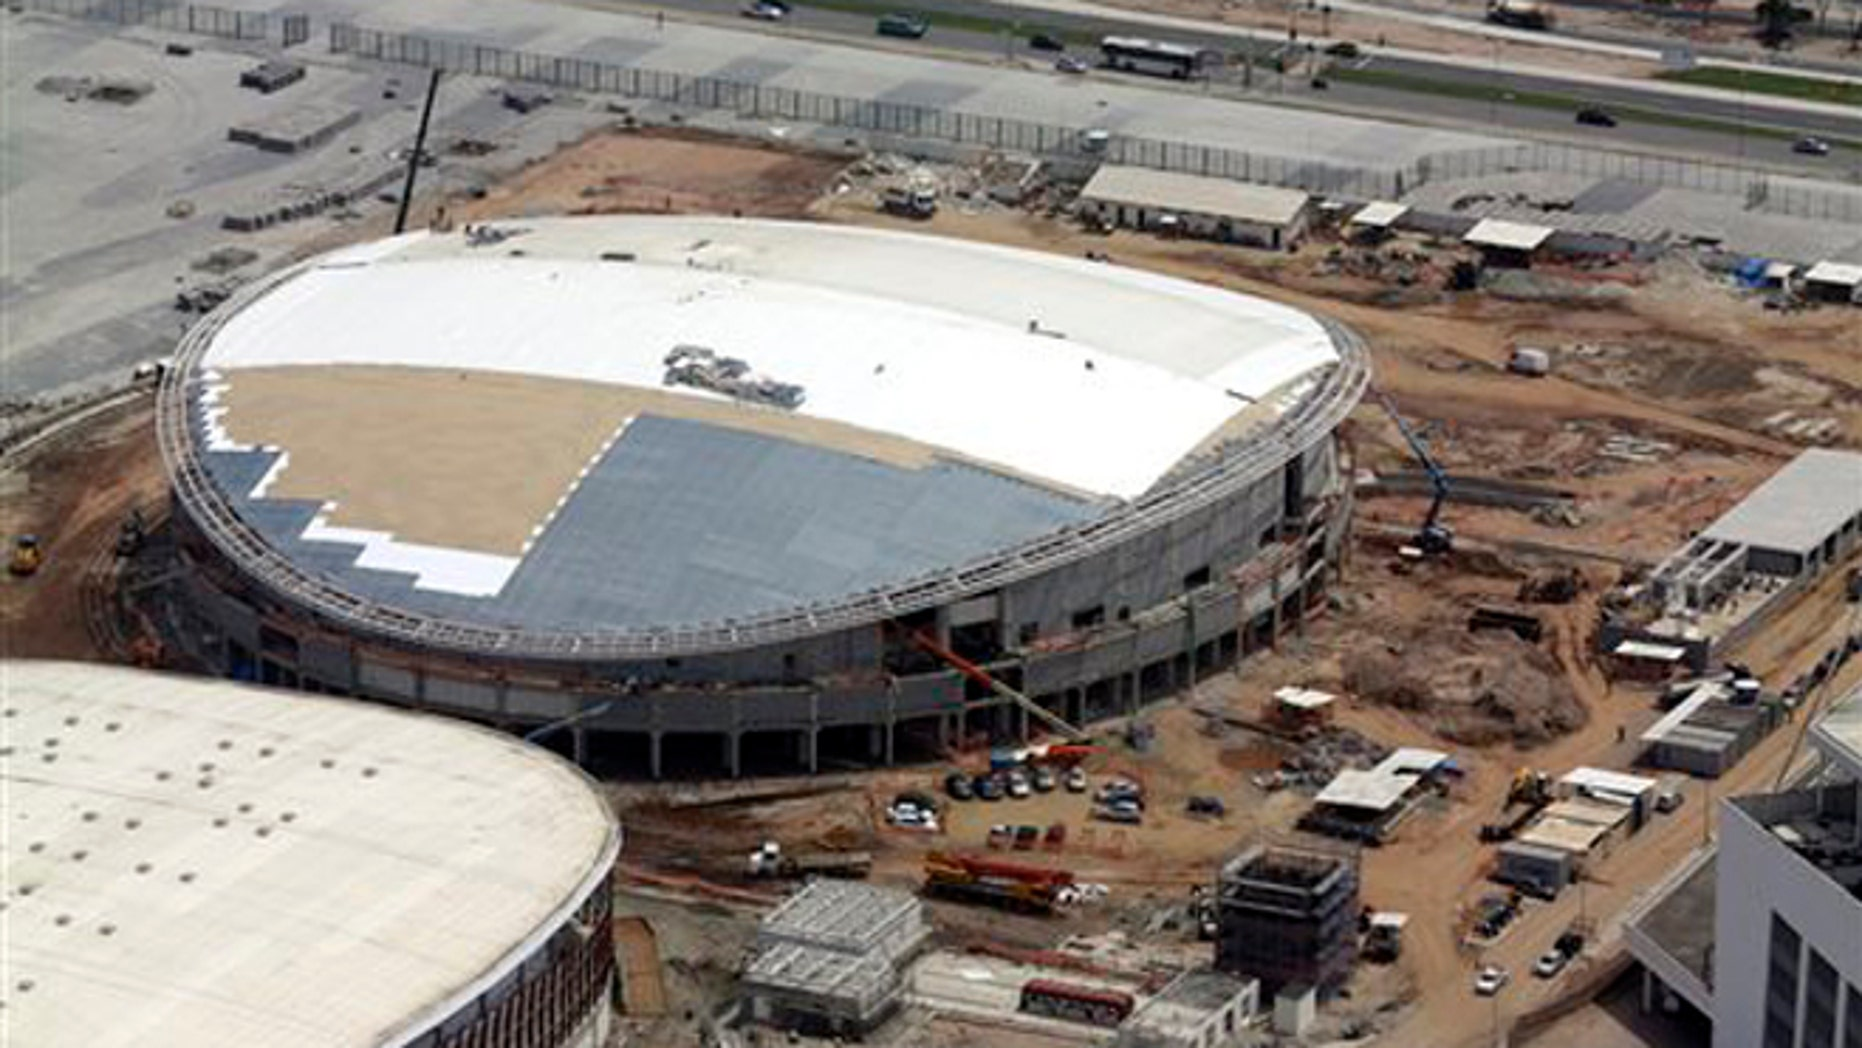 FILE - In this Oct. 9, 2015, file aerial photo, construction continues at the Rio Olympics velodrome in Rio de Janeiro. The president of cyclings world governing body remains very, very concerned that the velodrome under construction for the Rio Olympics will not be completed by the opening in August.  (AP Photo/David J. Phillip, File)